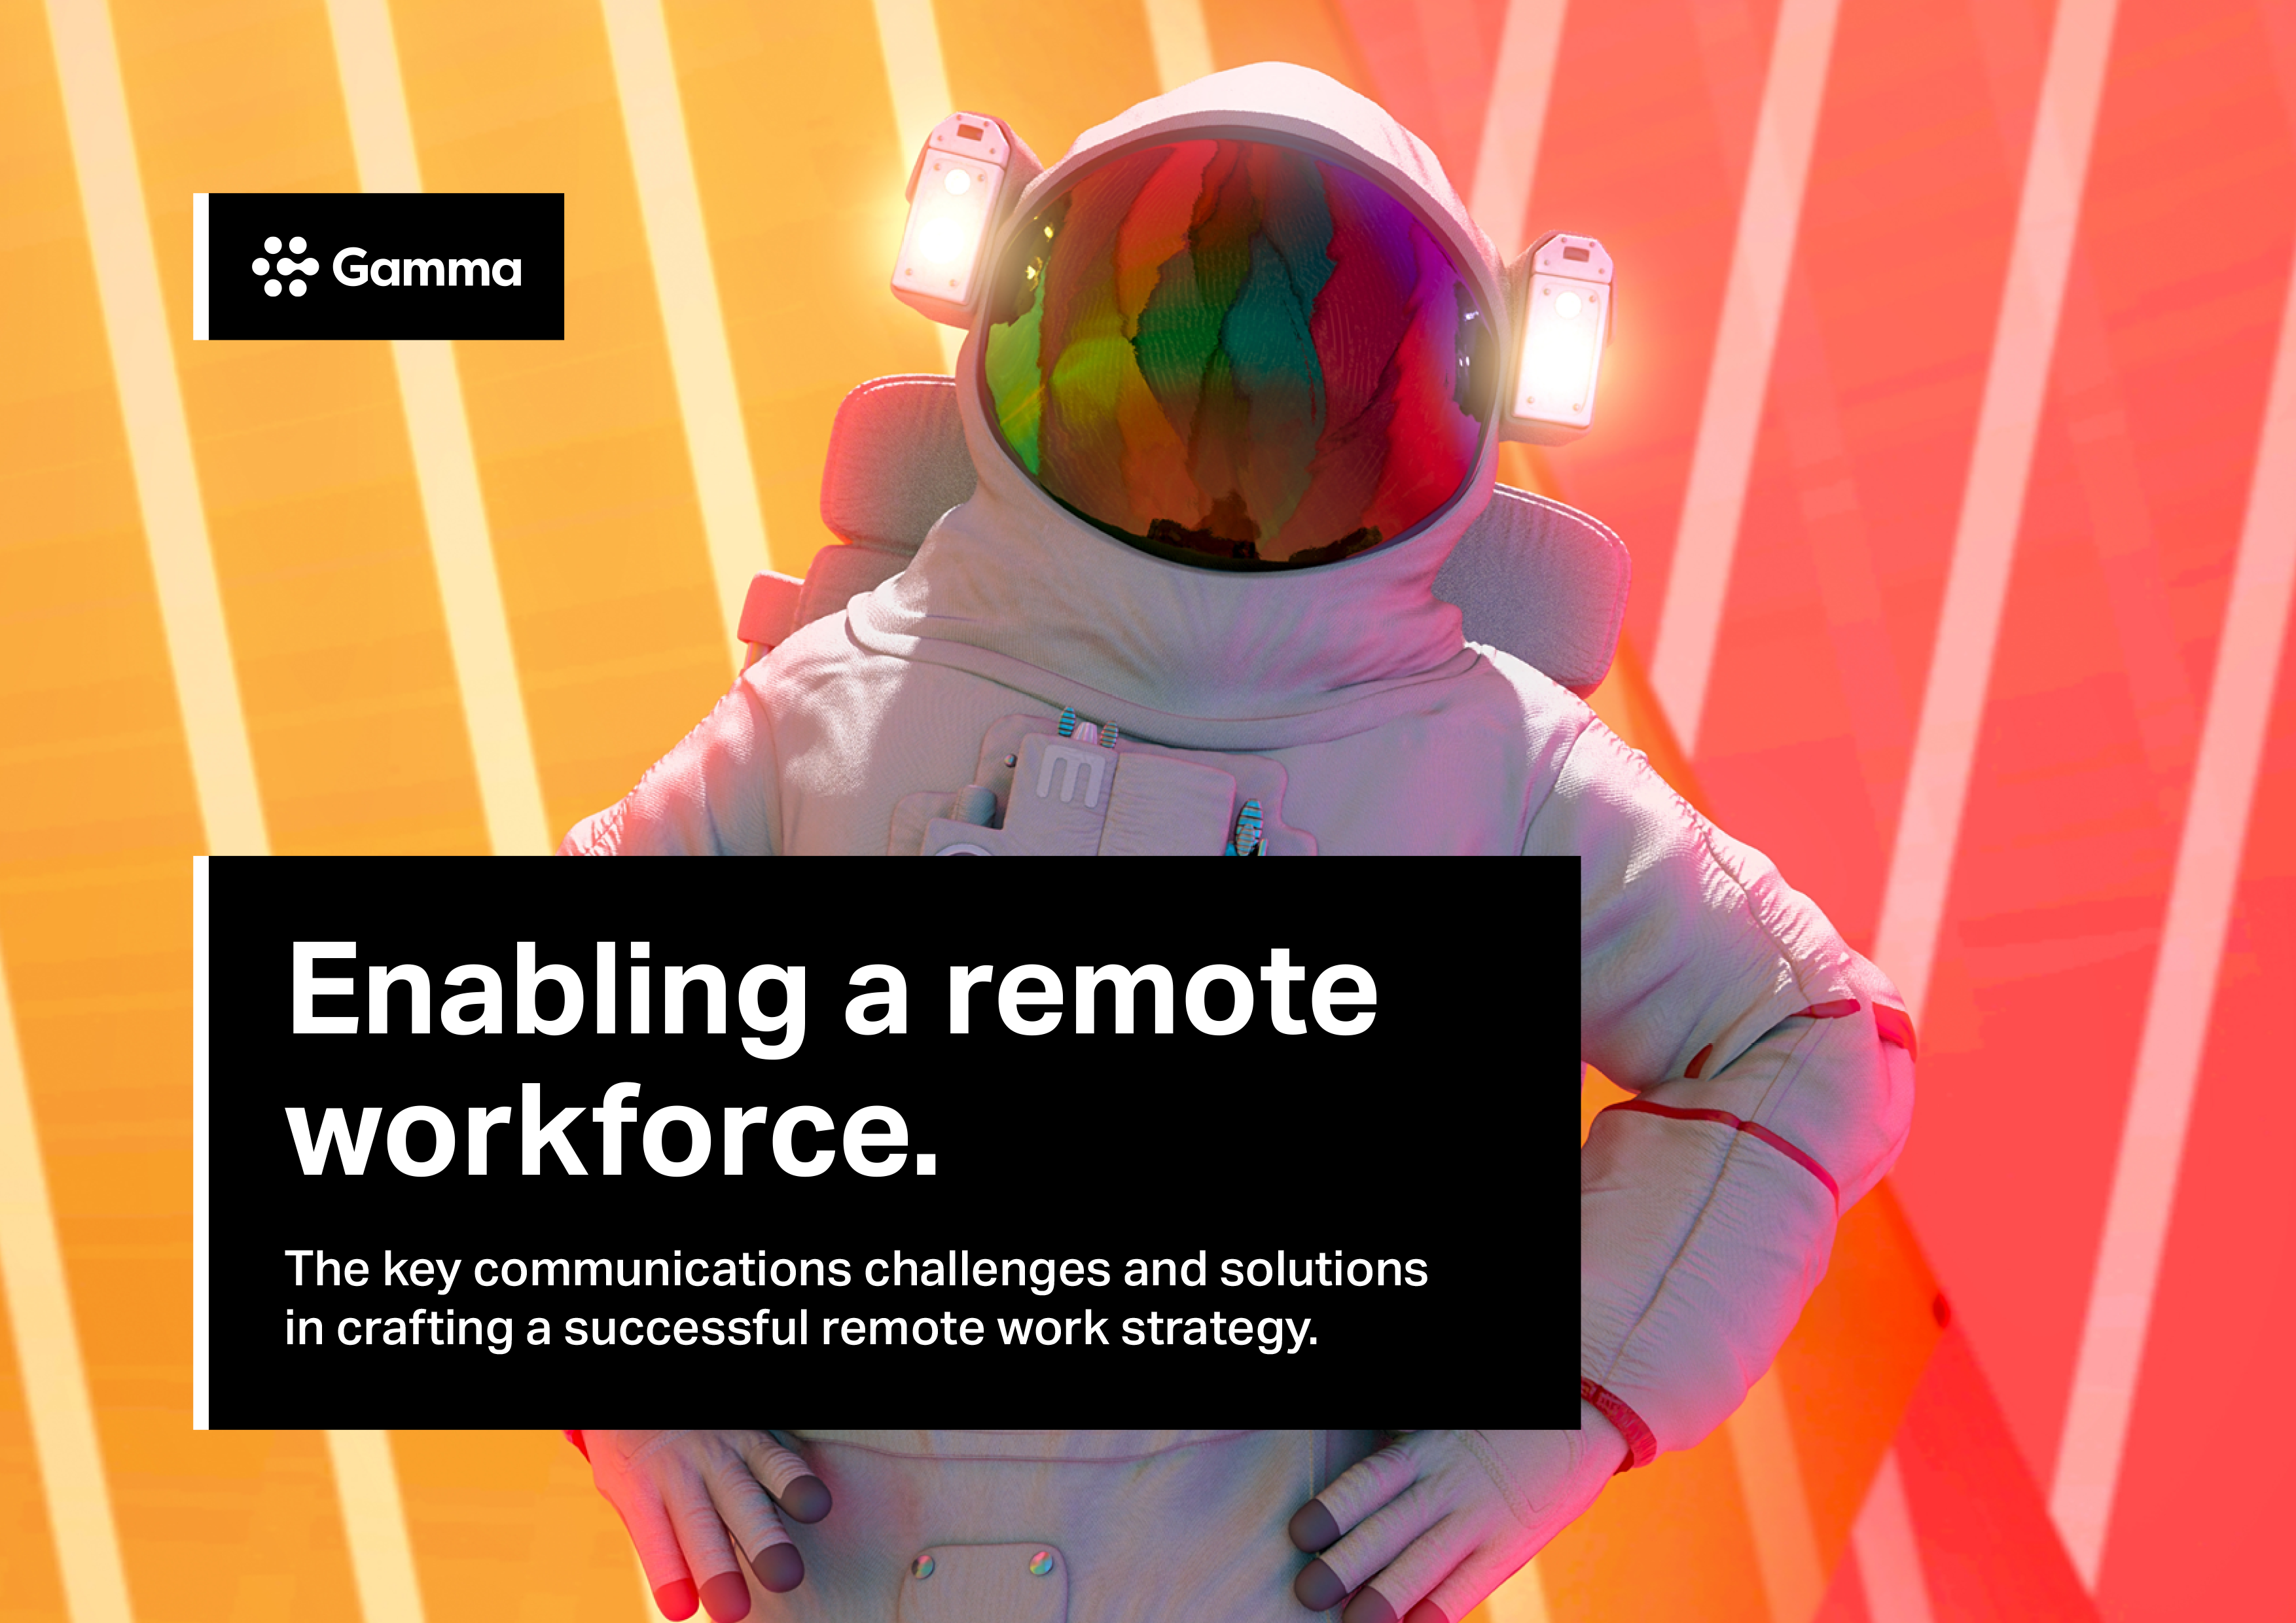 Enabling a remote workforce eguide front cover